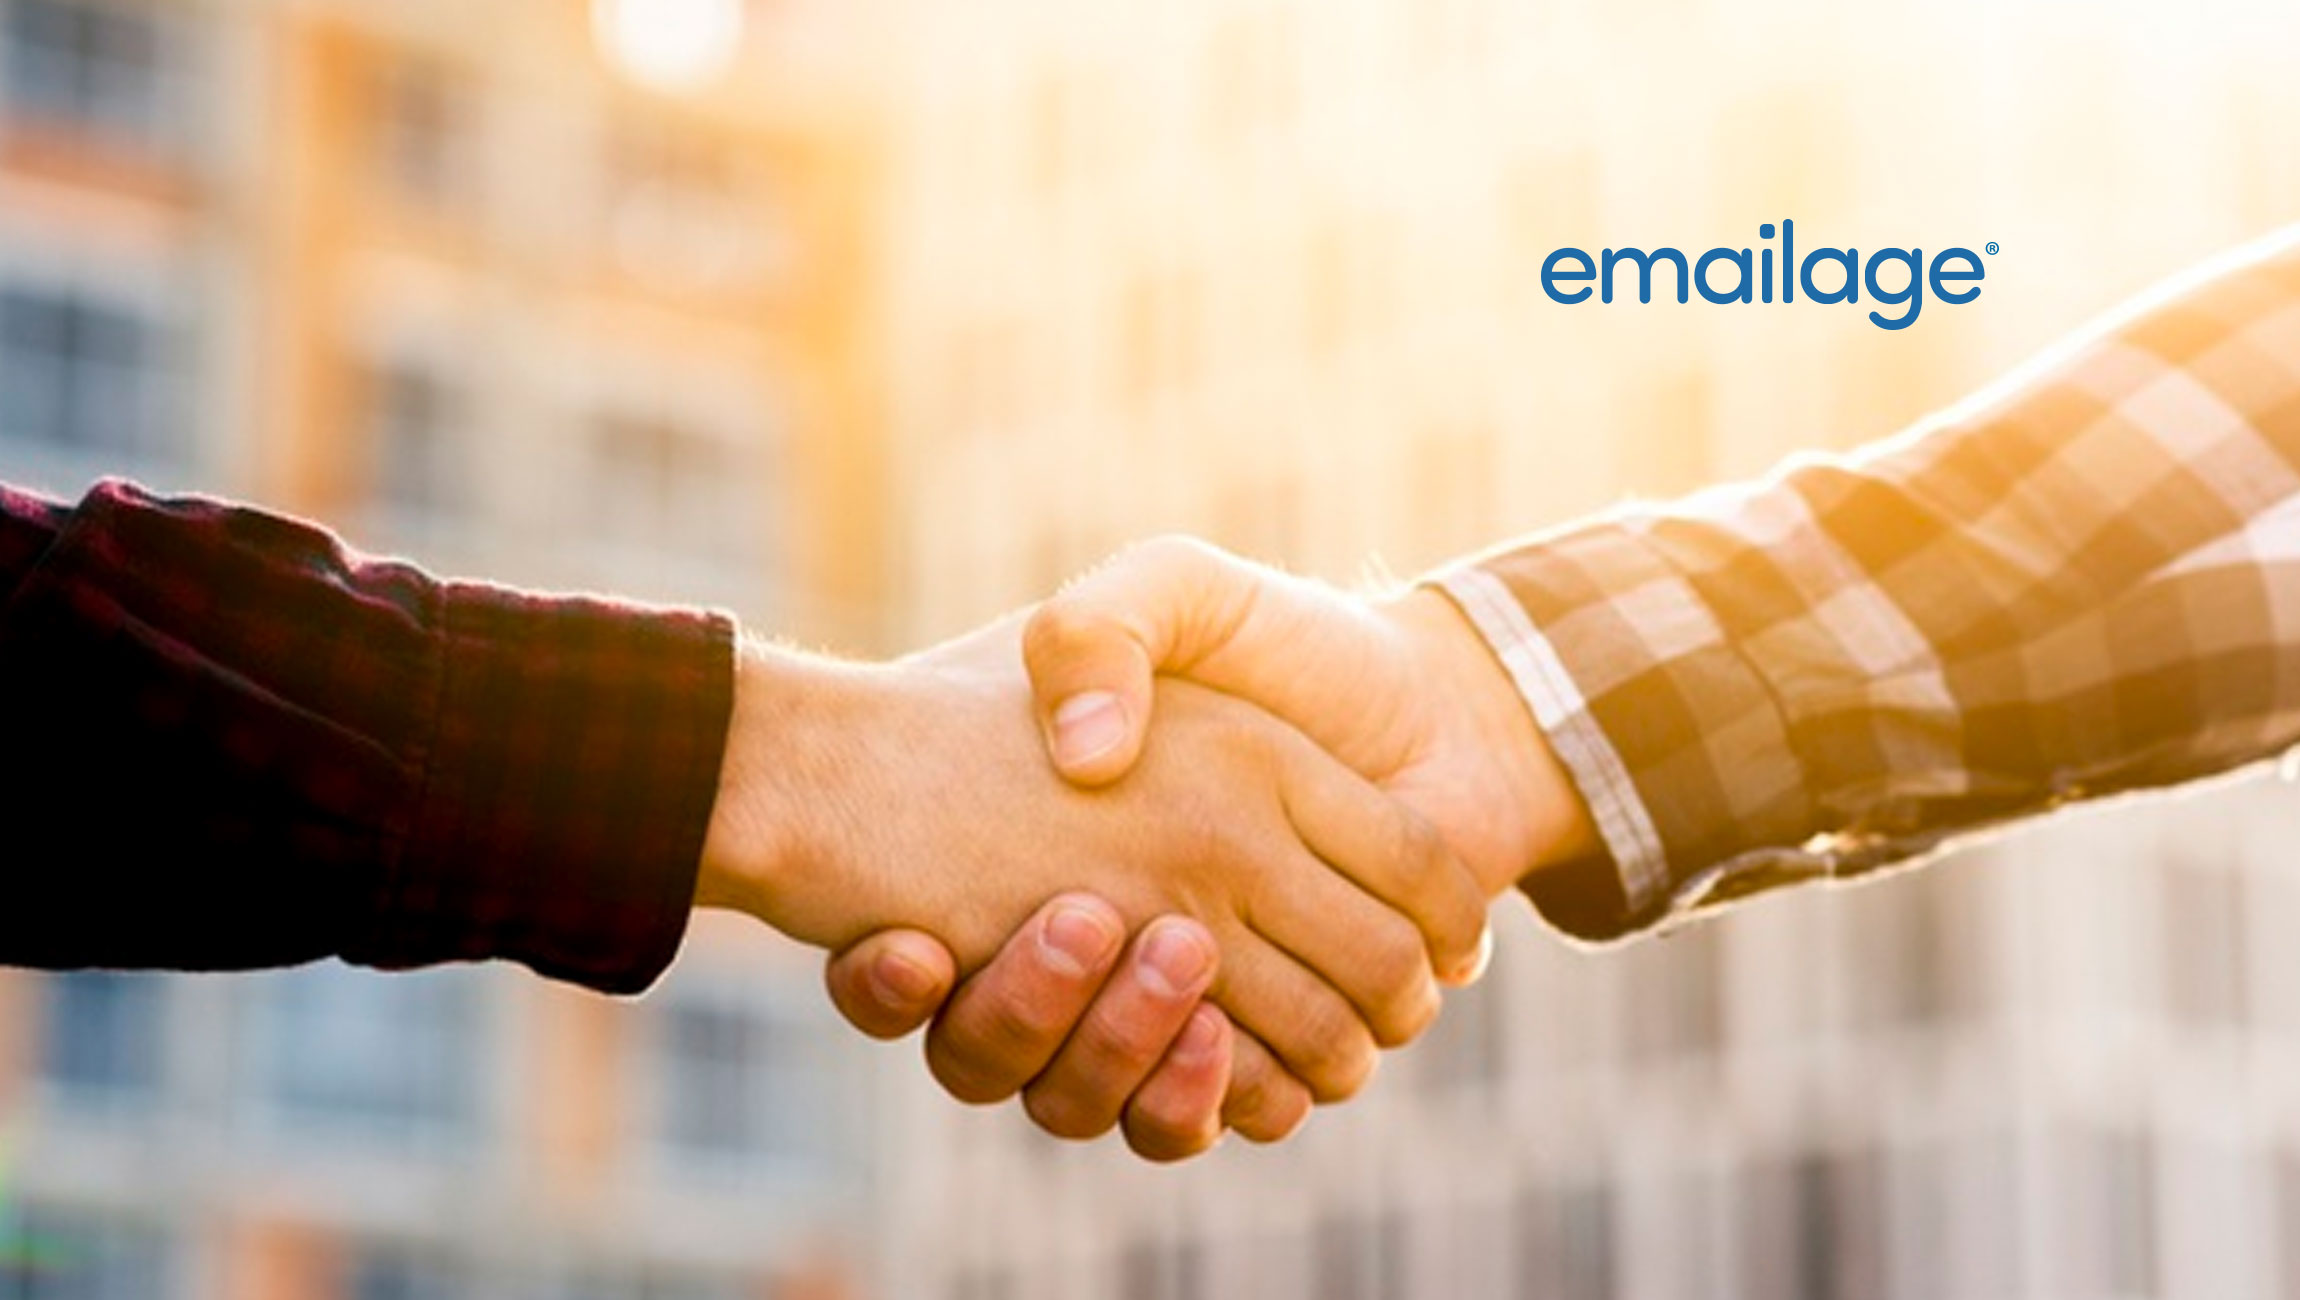 Emailage and Featurespace Partner to Tackle Application Fraud